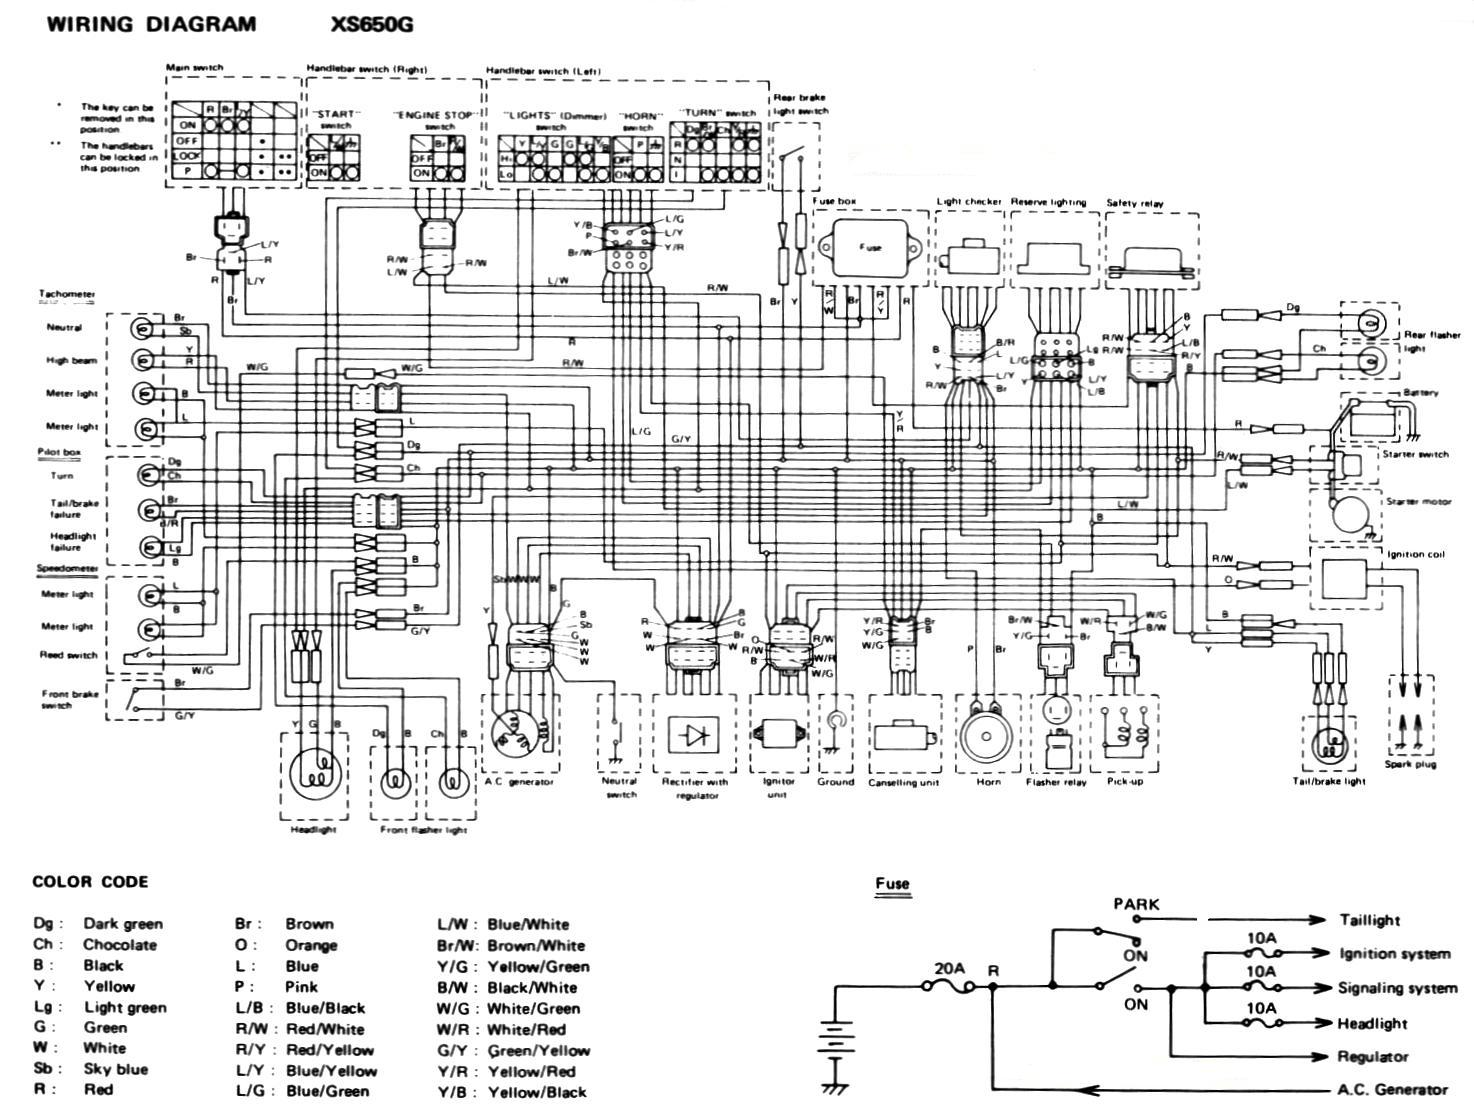 80XS650G wiring diagrams 1979 xs650 wiring diagram at crackthecode.co